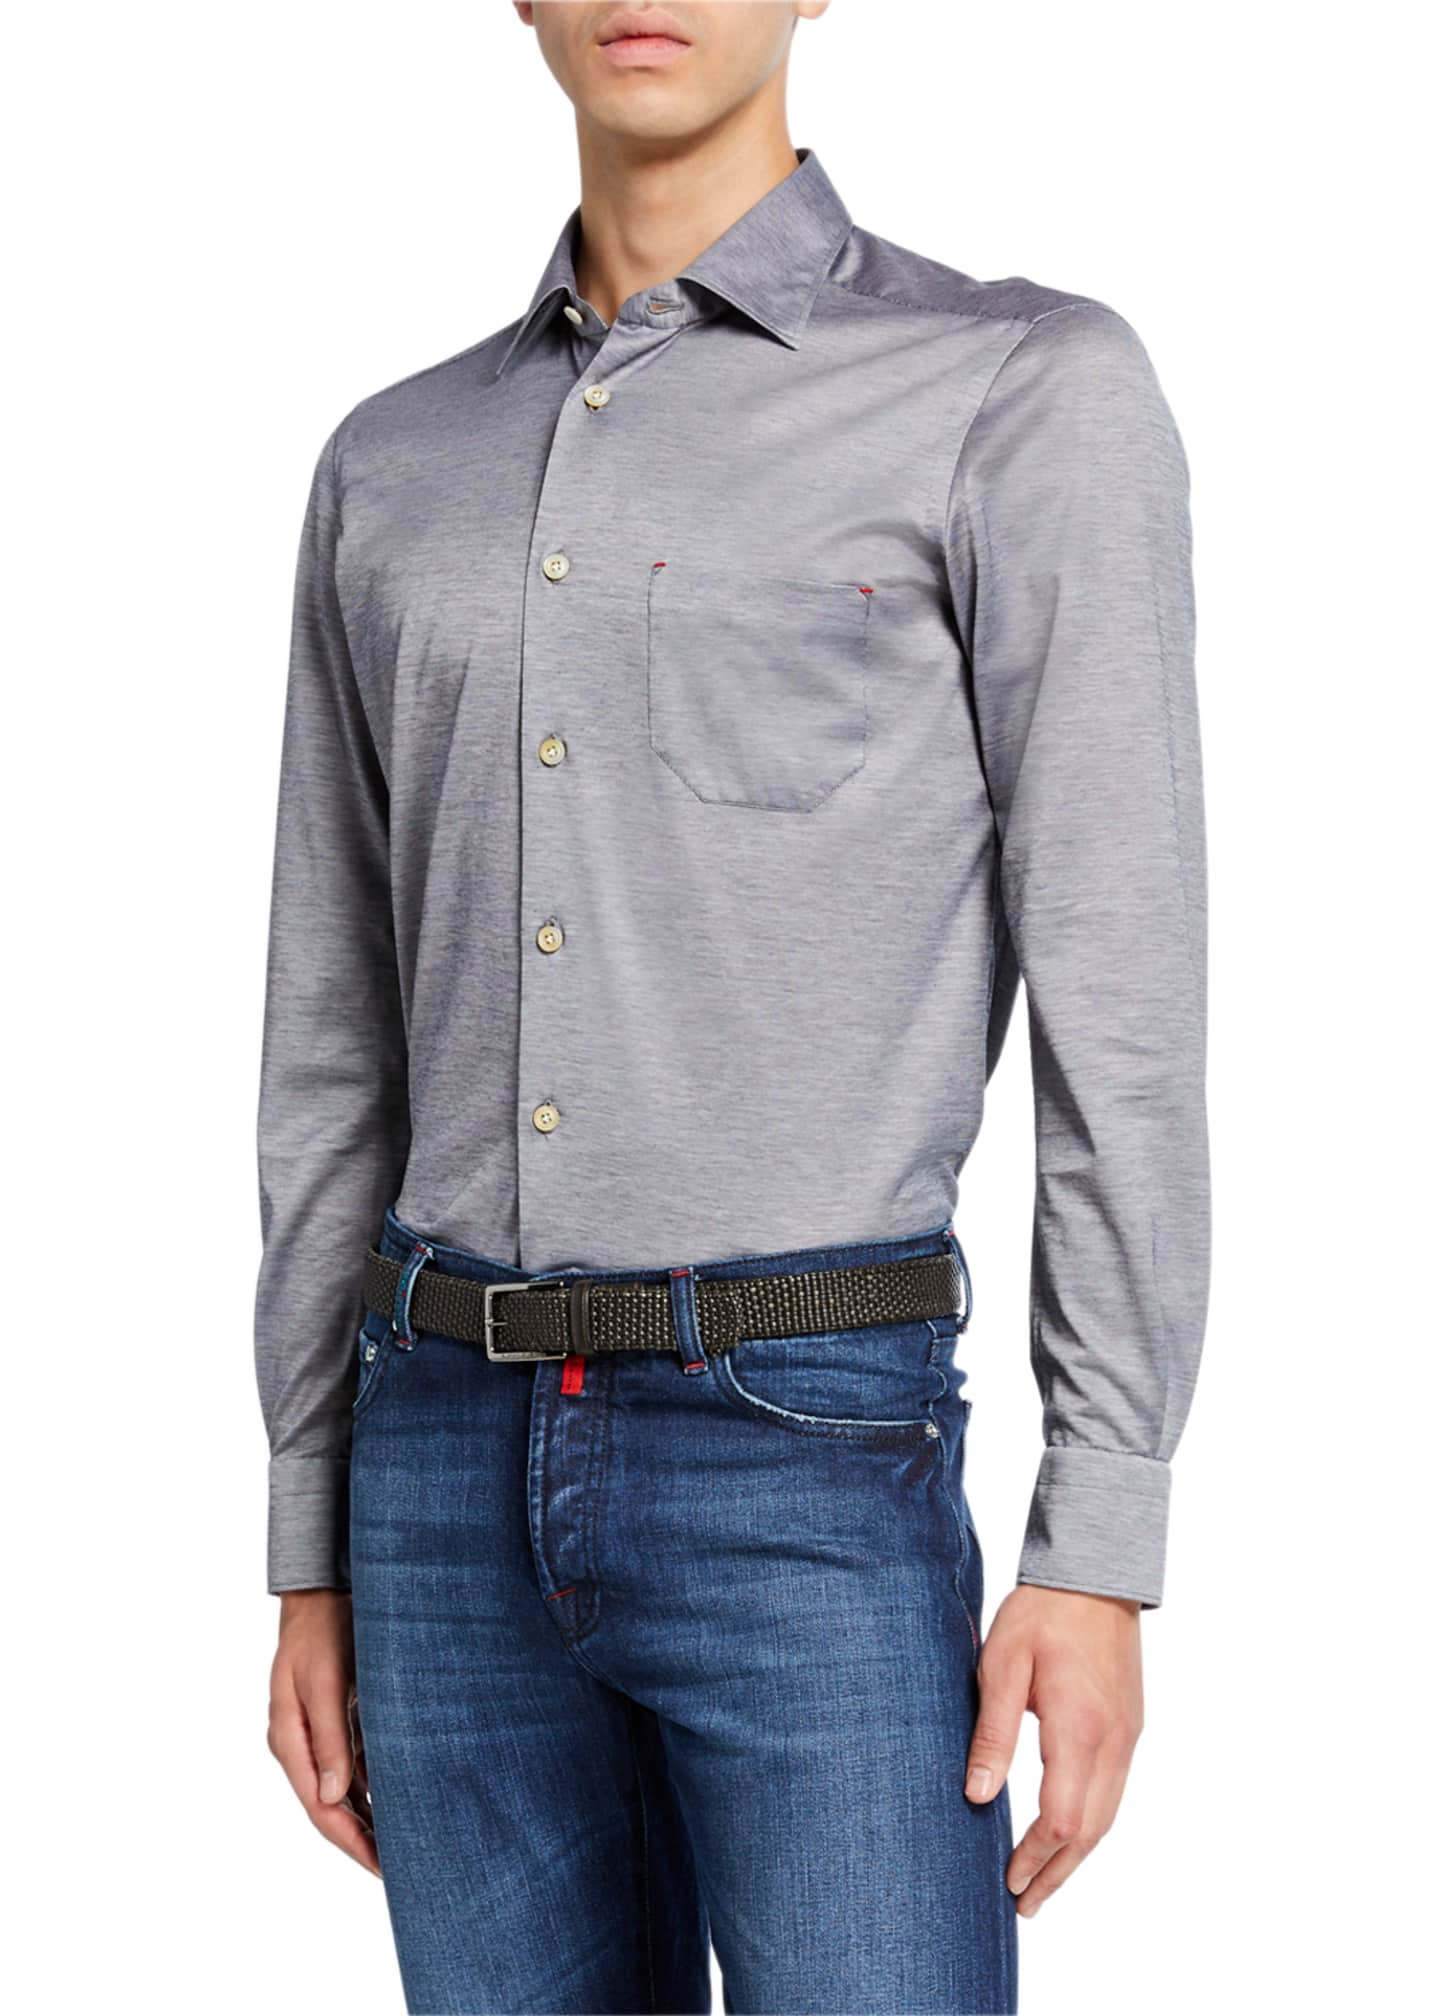 Kiton Men's Jersey Cotton Shirt, Gray